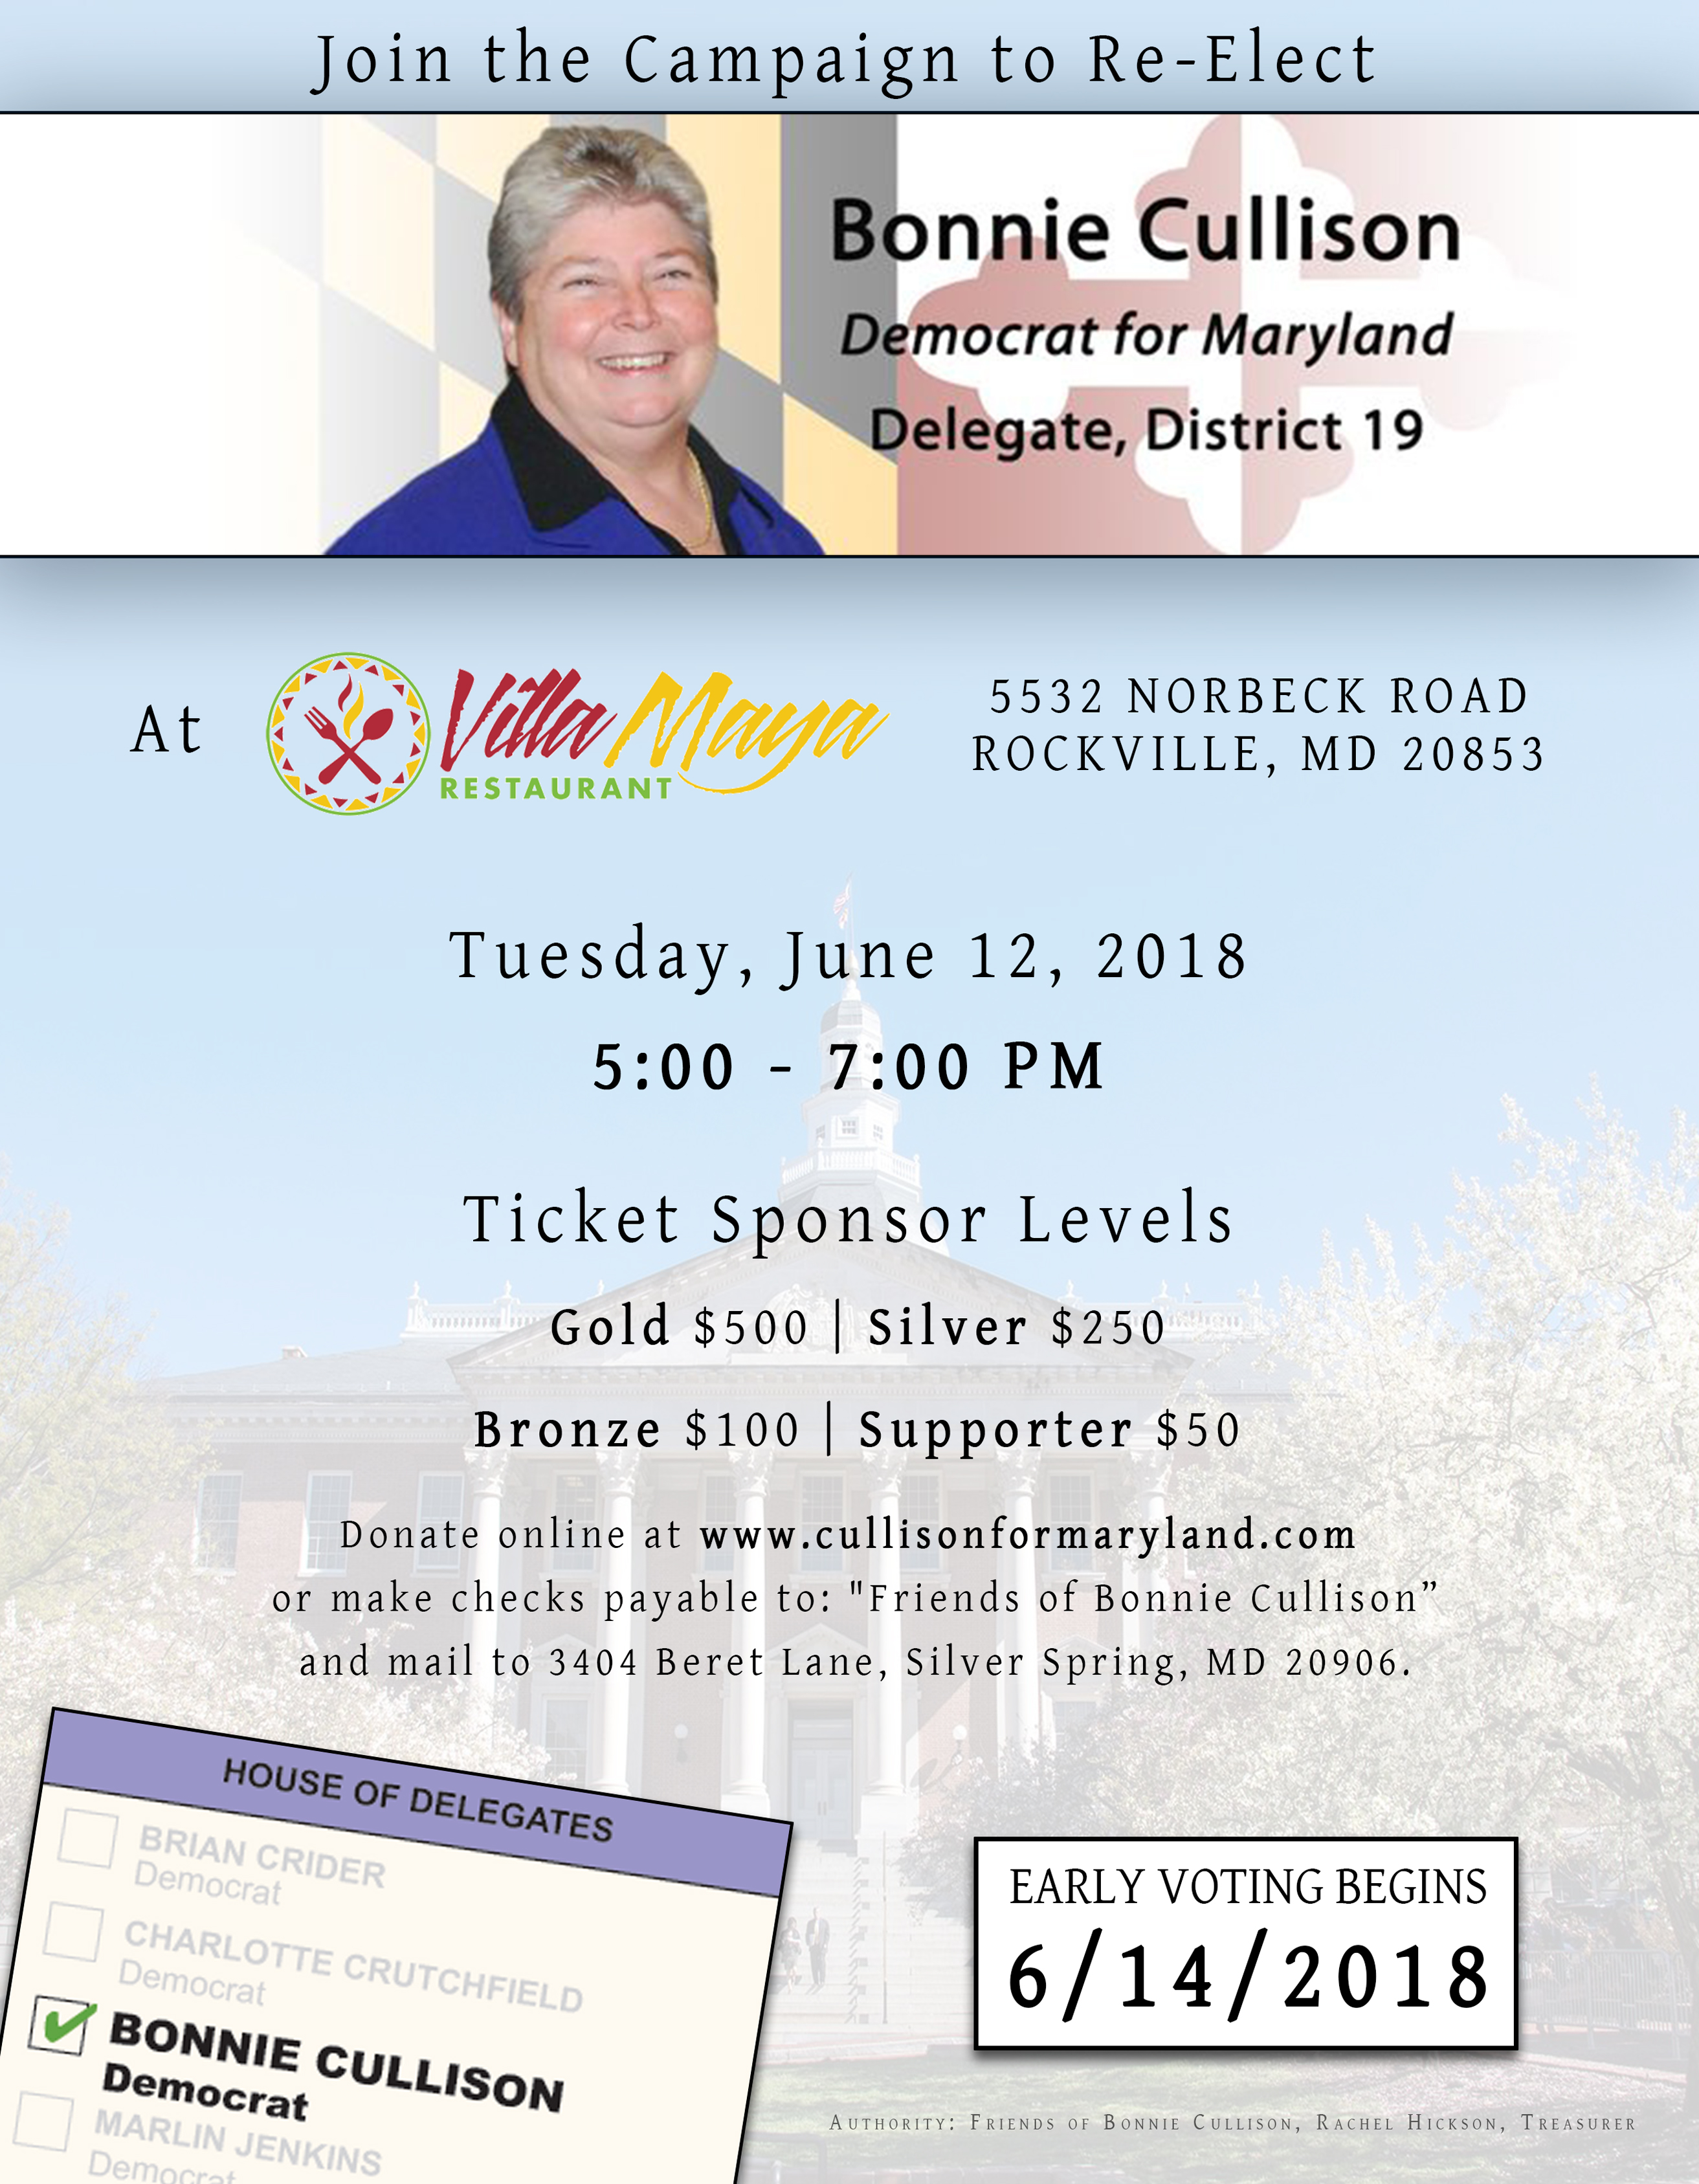 Join us at Villa Maya Restaurant, at 5532 Norbeck Road, Rockville, MD 20853, on Tuesday, June 12, 2018, from 5pm to 7pm. Tickets levels begin at $50.